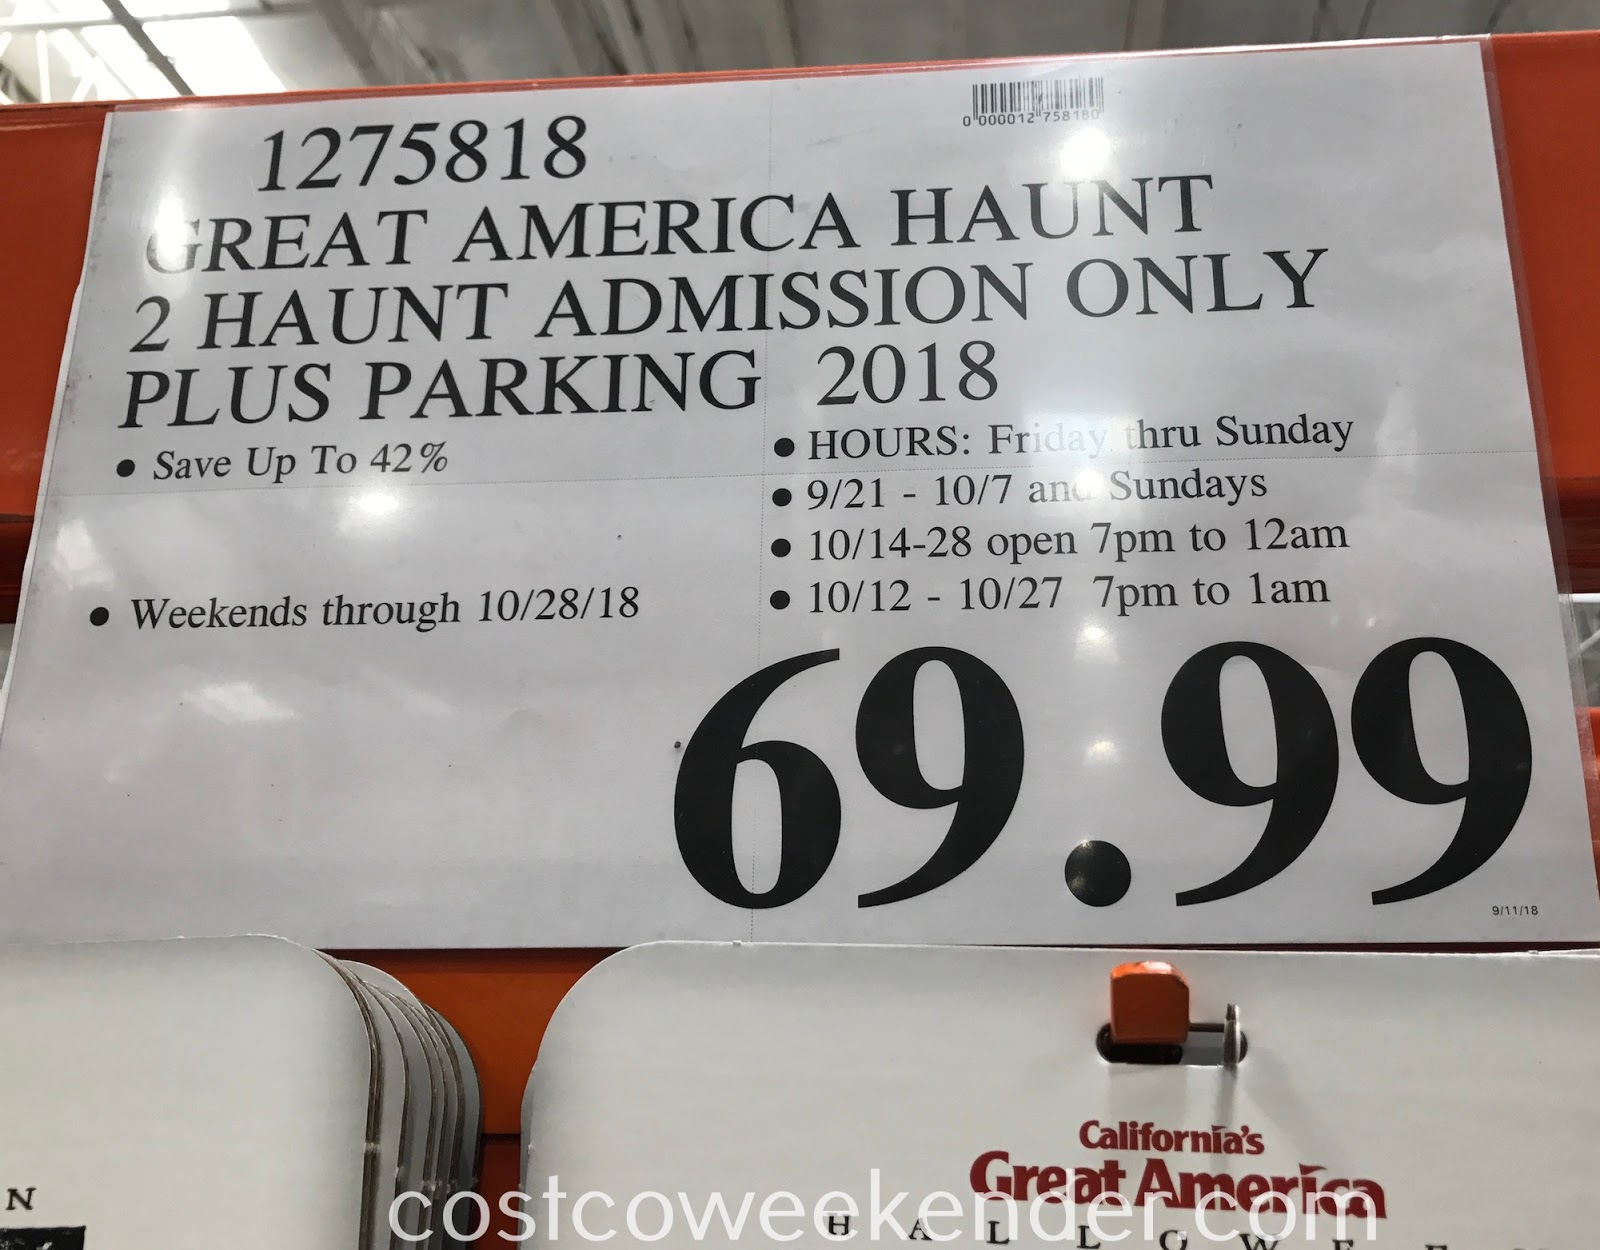 Deal for 2 Halloween Haunt tickets and parking Great America at Costco